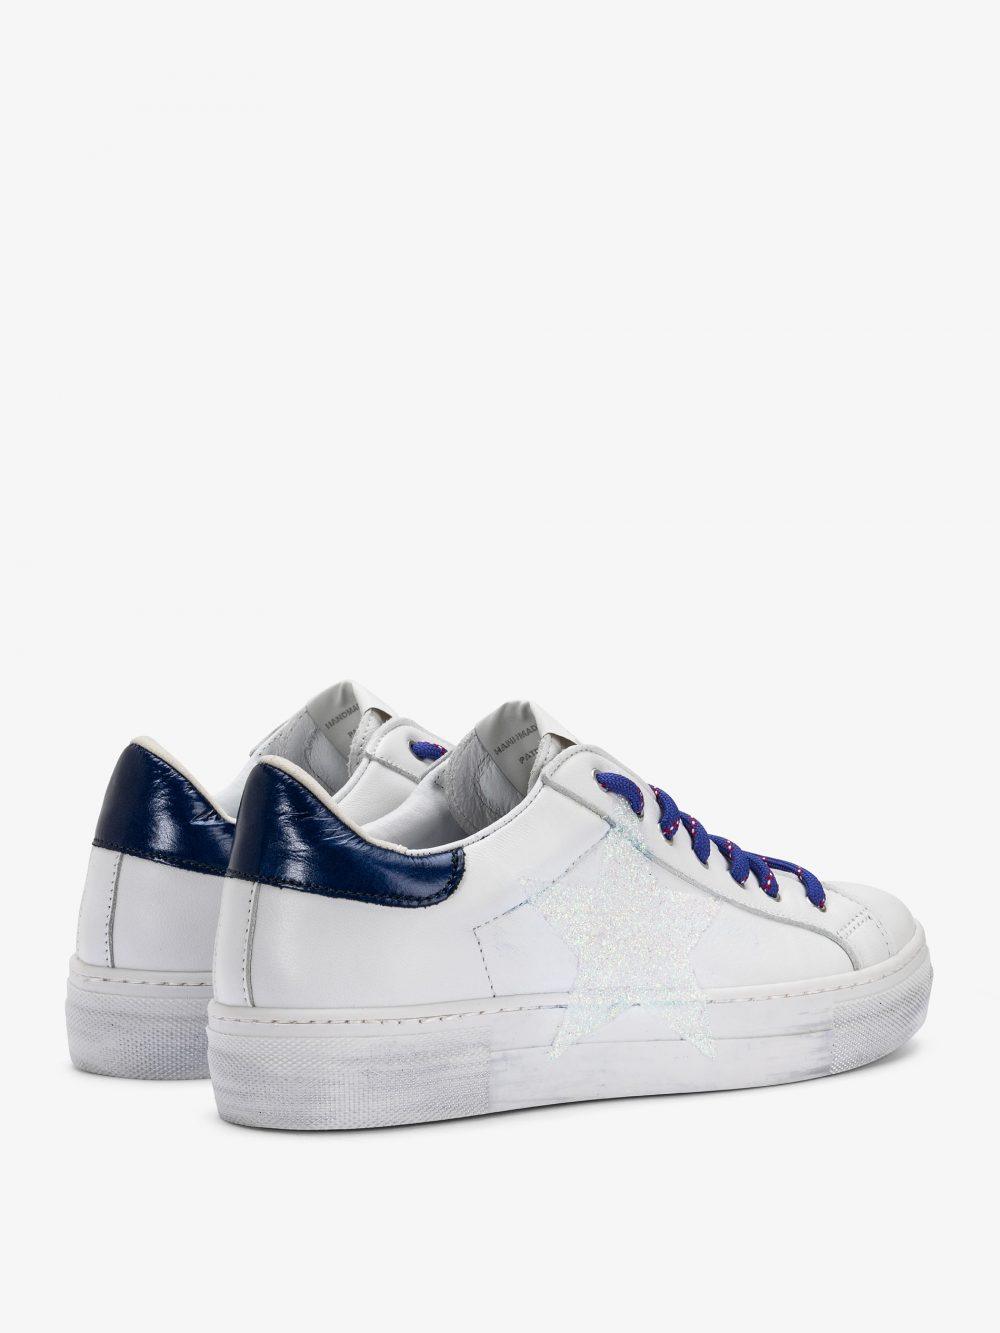 sneakers-in-pelle-donna-martini-vintage-blue-lips-stella (3)